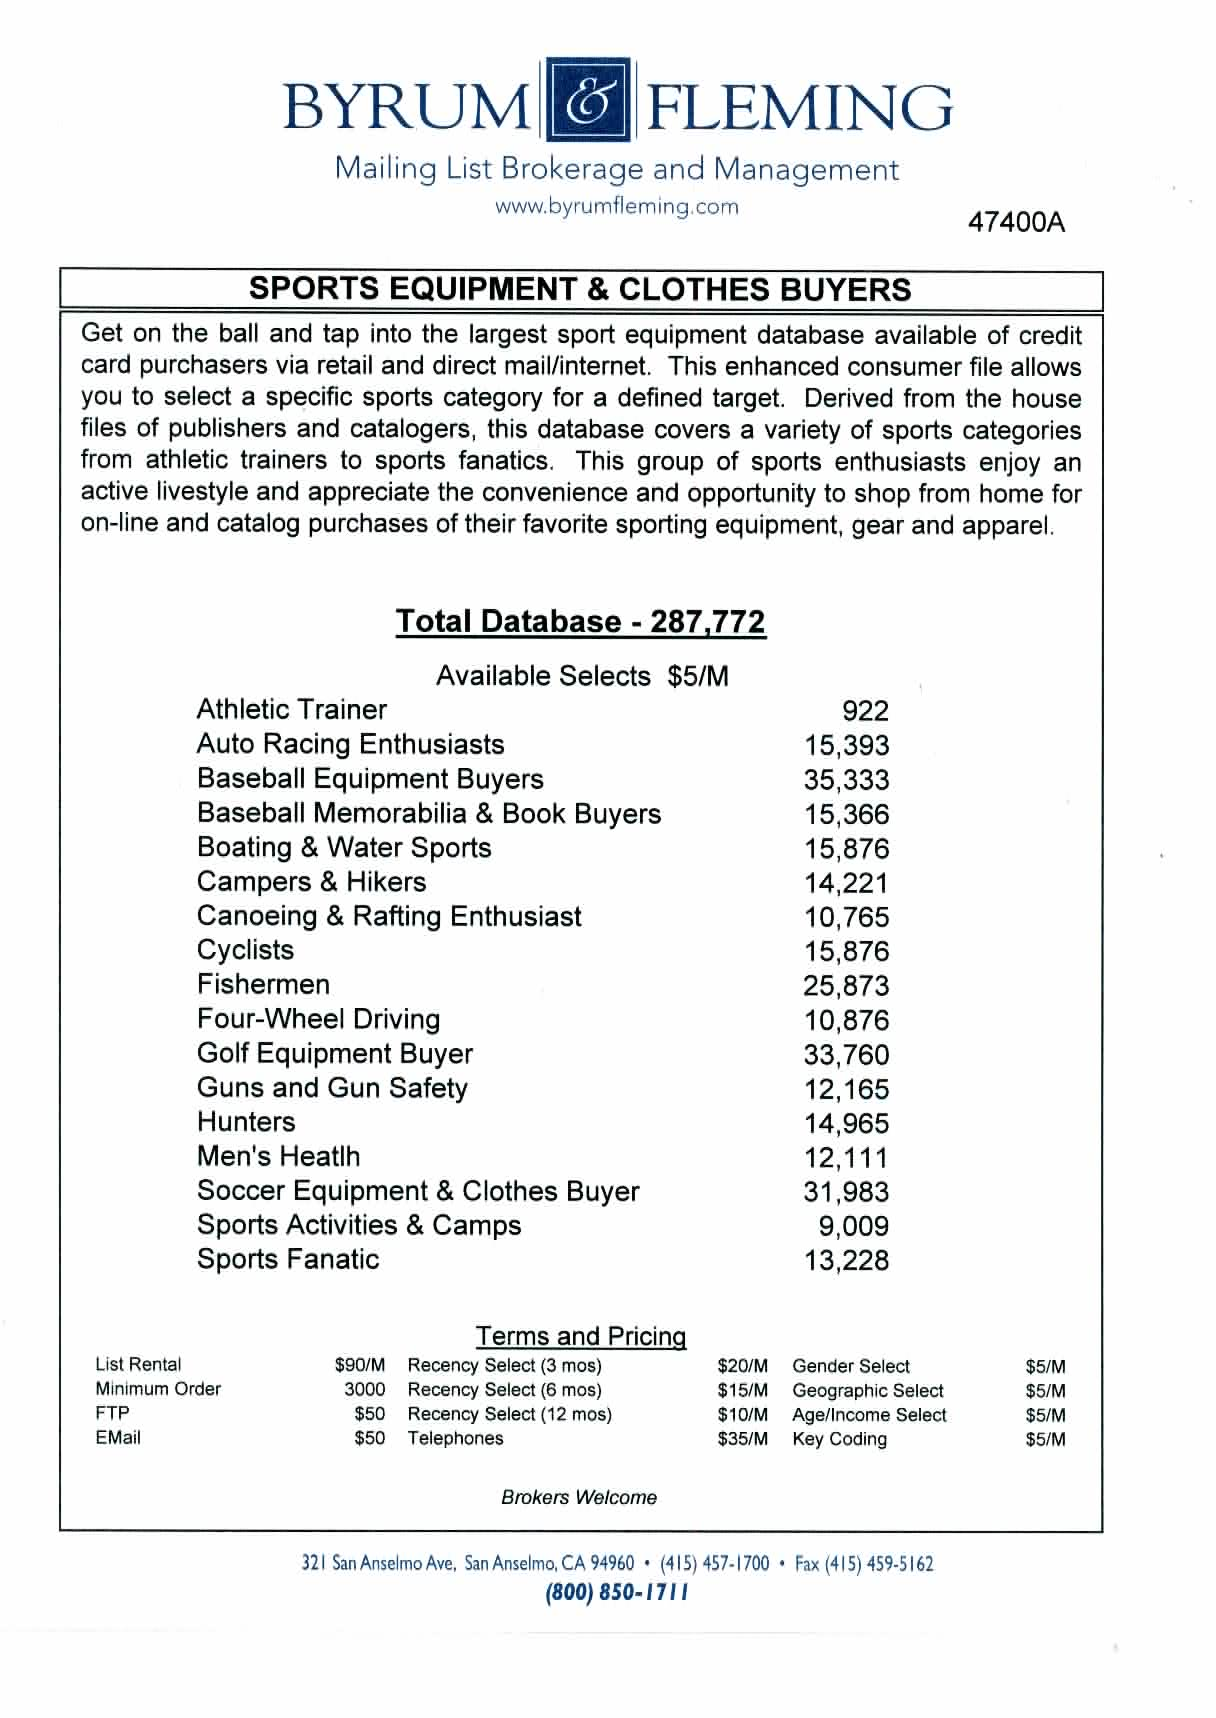 Athletic Trainer Auto Racing Baseball Memorabilia Boating & Water Campers & Hikers Canoeing & Rafting Cyclists Fishermen Four-Wheel Driving Golf Guns and Gun Safety Hunters Men's Heatlh Soccer Activities & Camps Fanatic